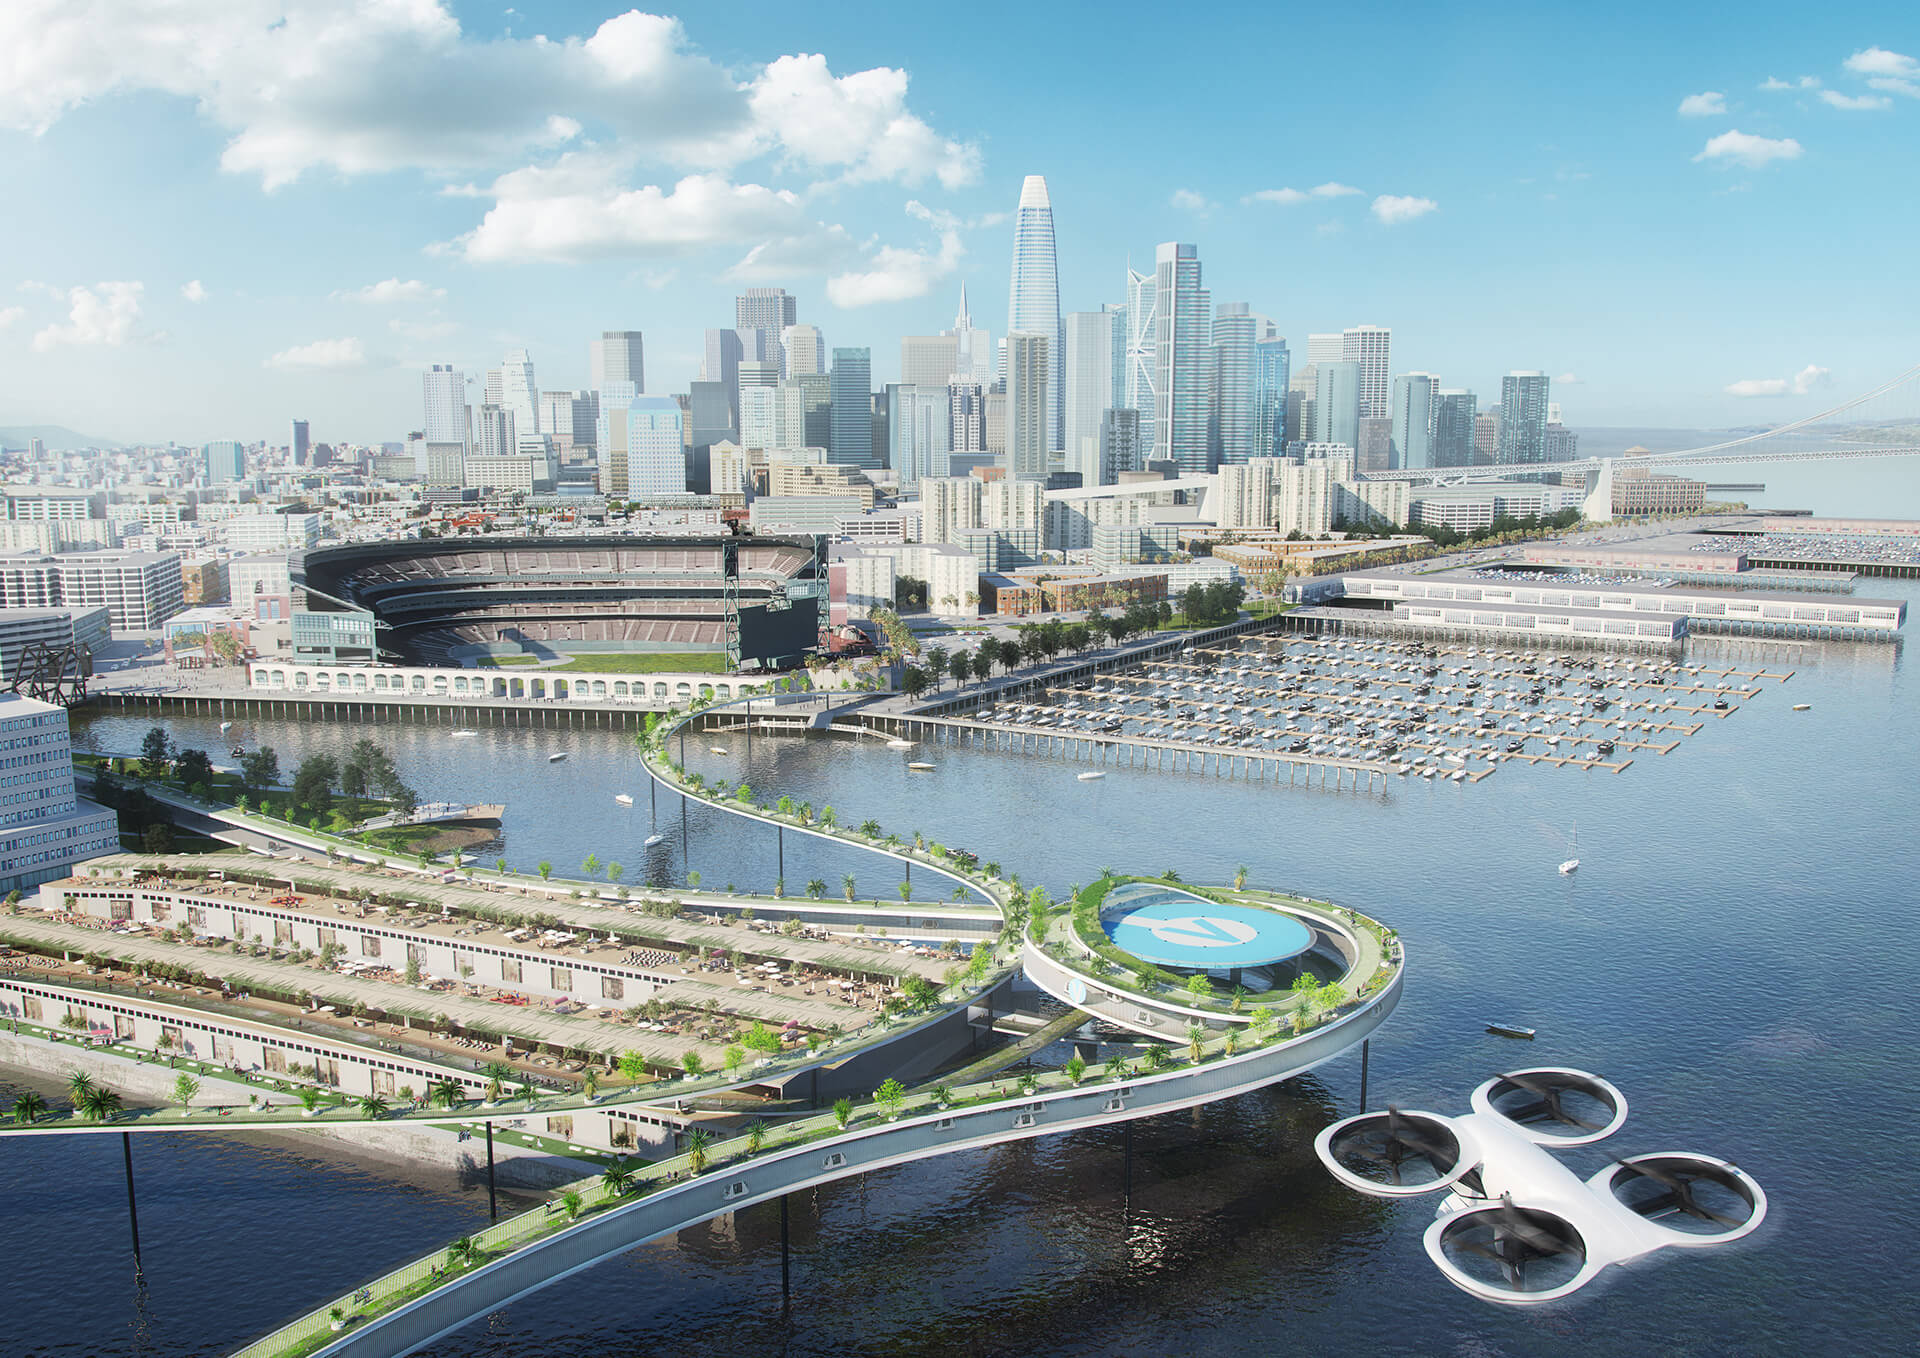 Promoting green mobility, San Francisco | Airbus | MVRDV | STIRworld